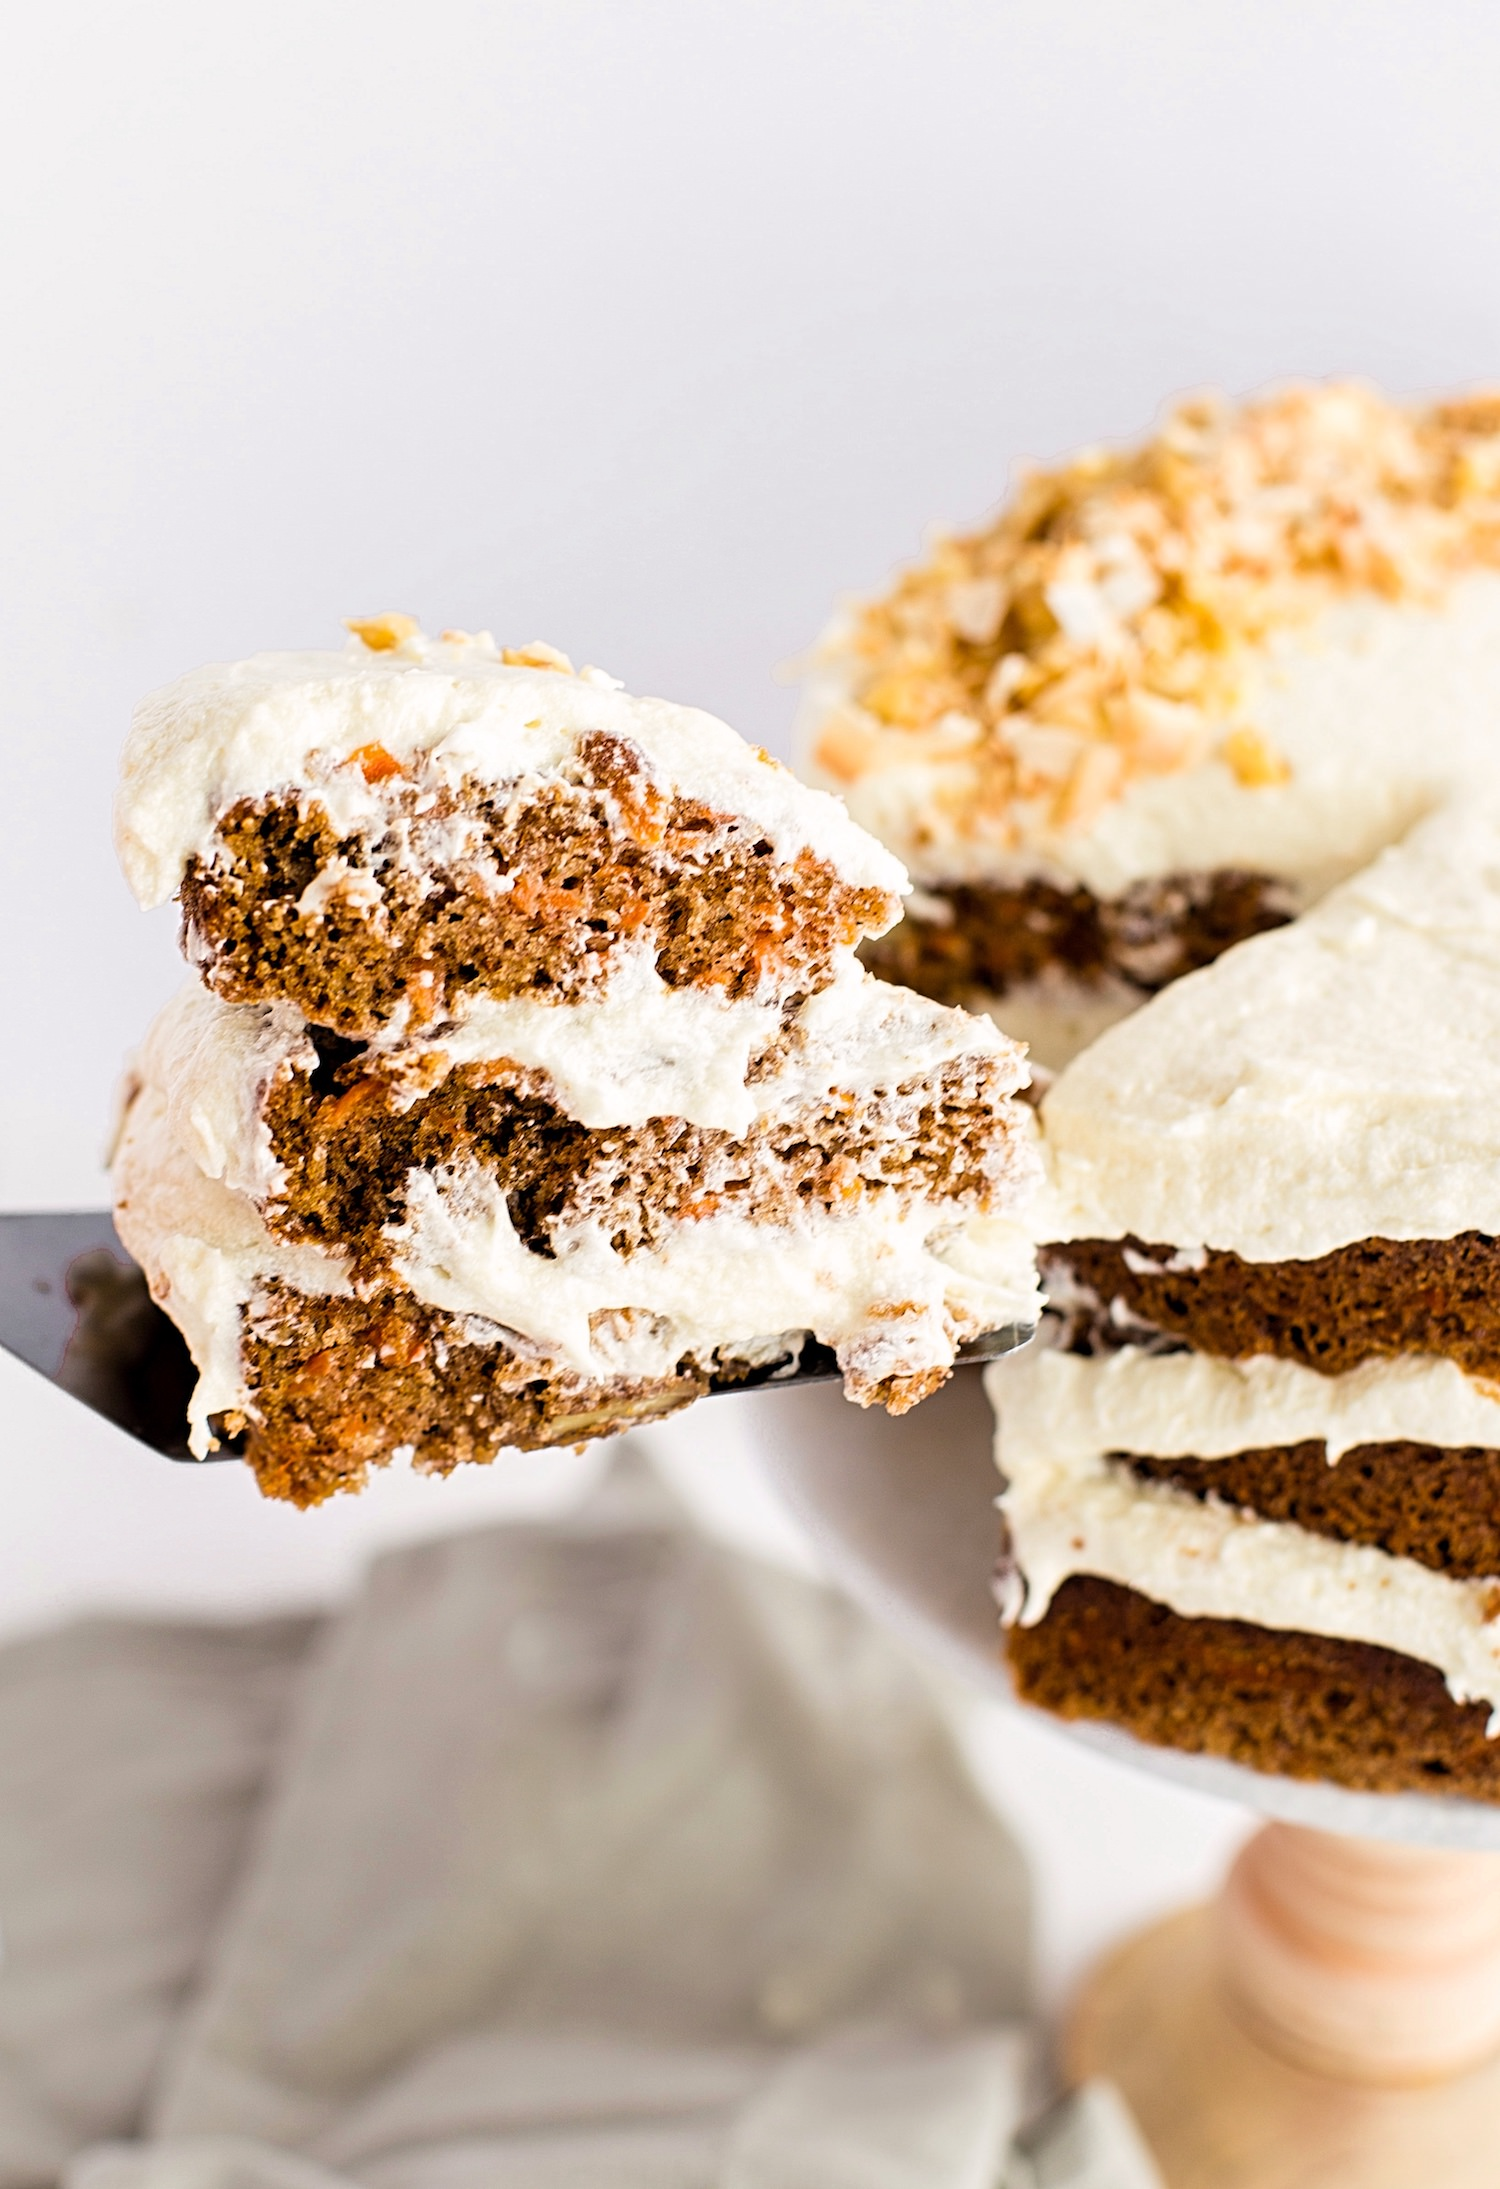 Amazing Carrot Cake with Cream Cheese Frosting: soft, moist, fluffy, spiced carrot layer cake with a creamy cream cheese frosting. | TrufflesandTrends.com